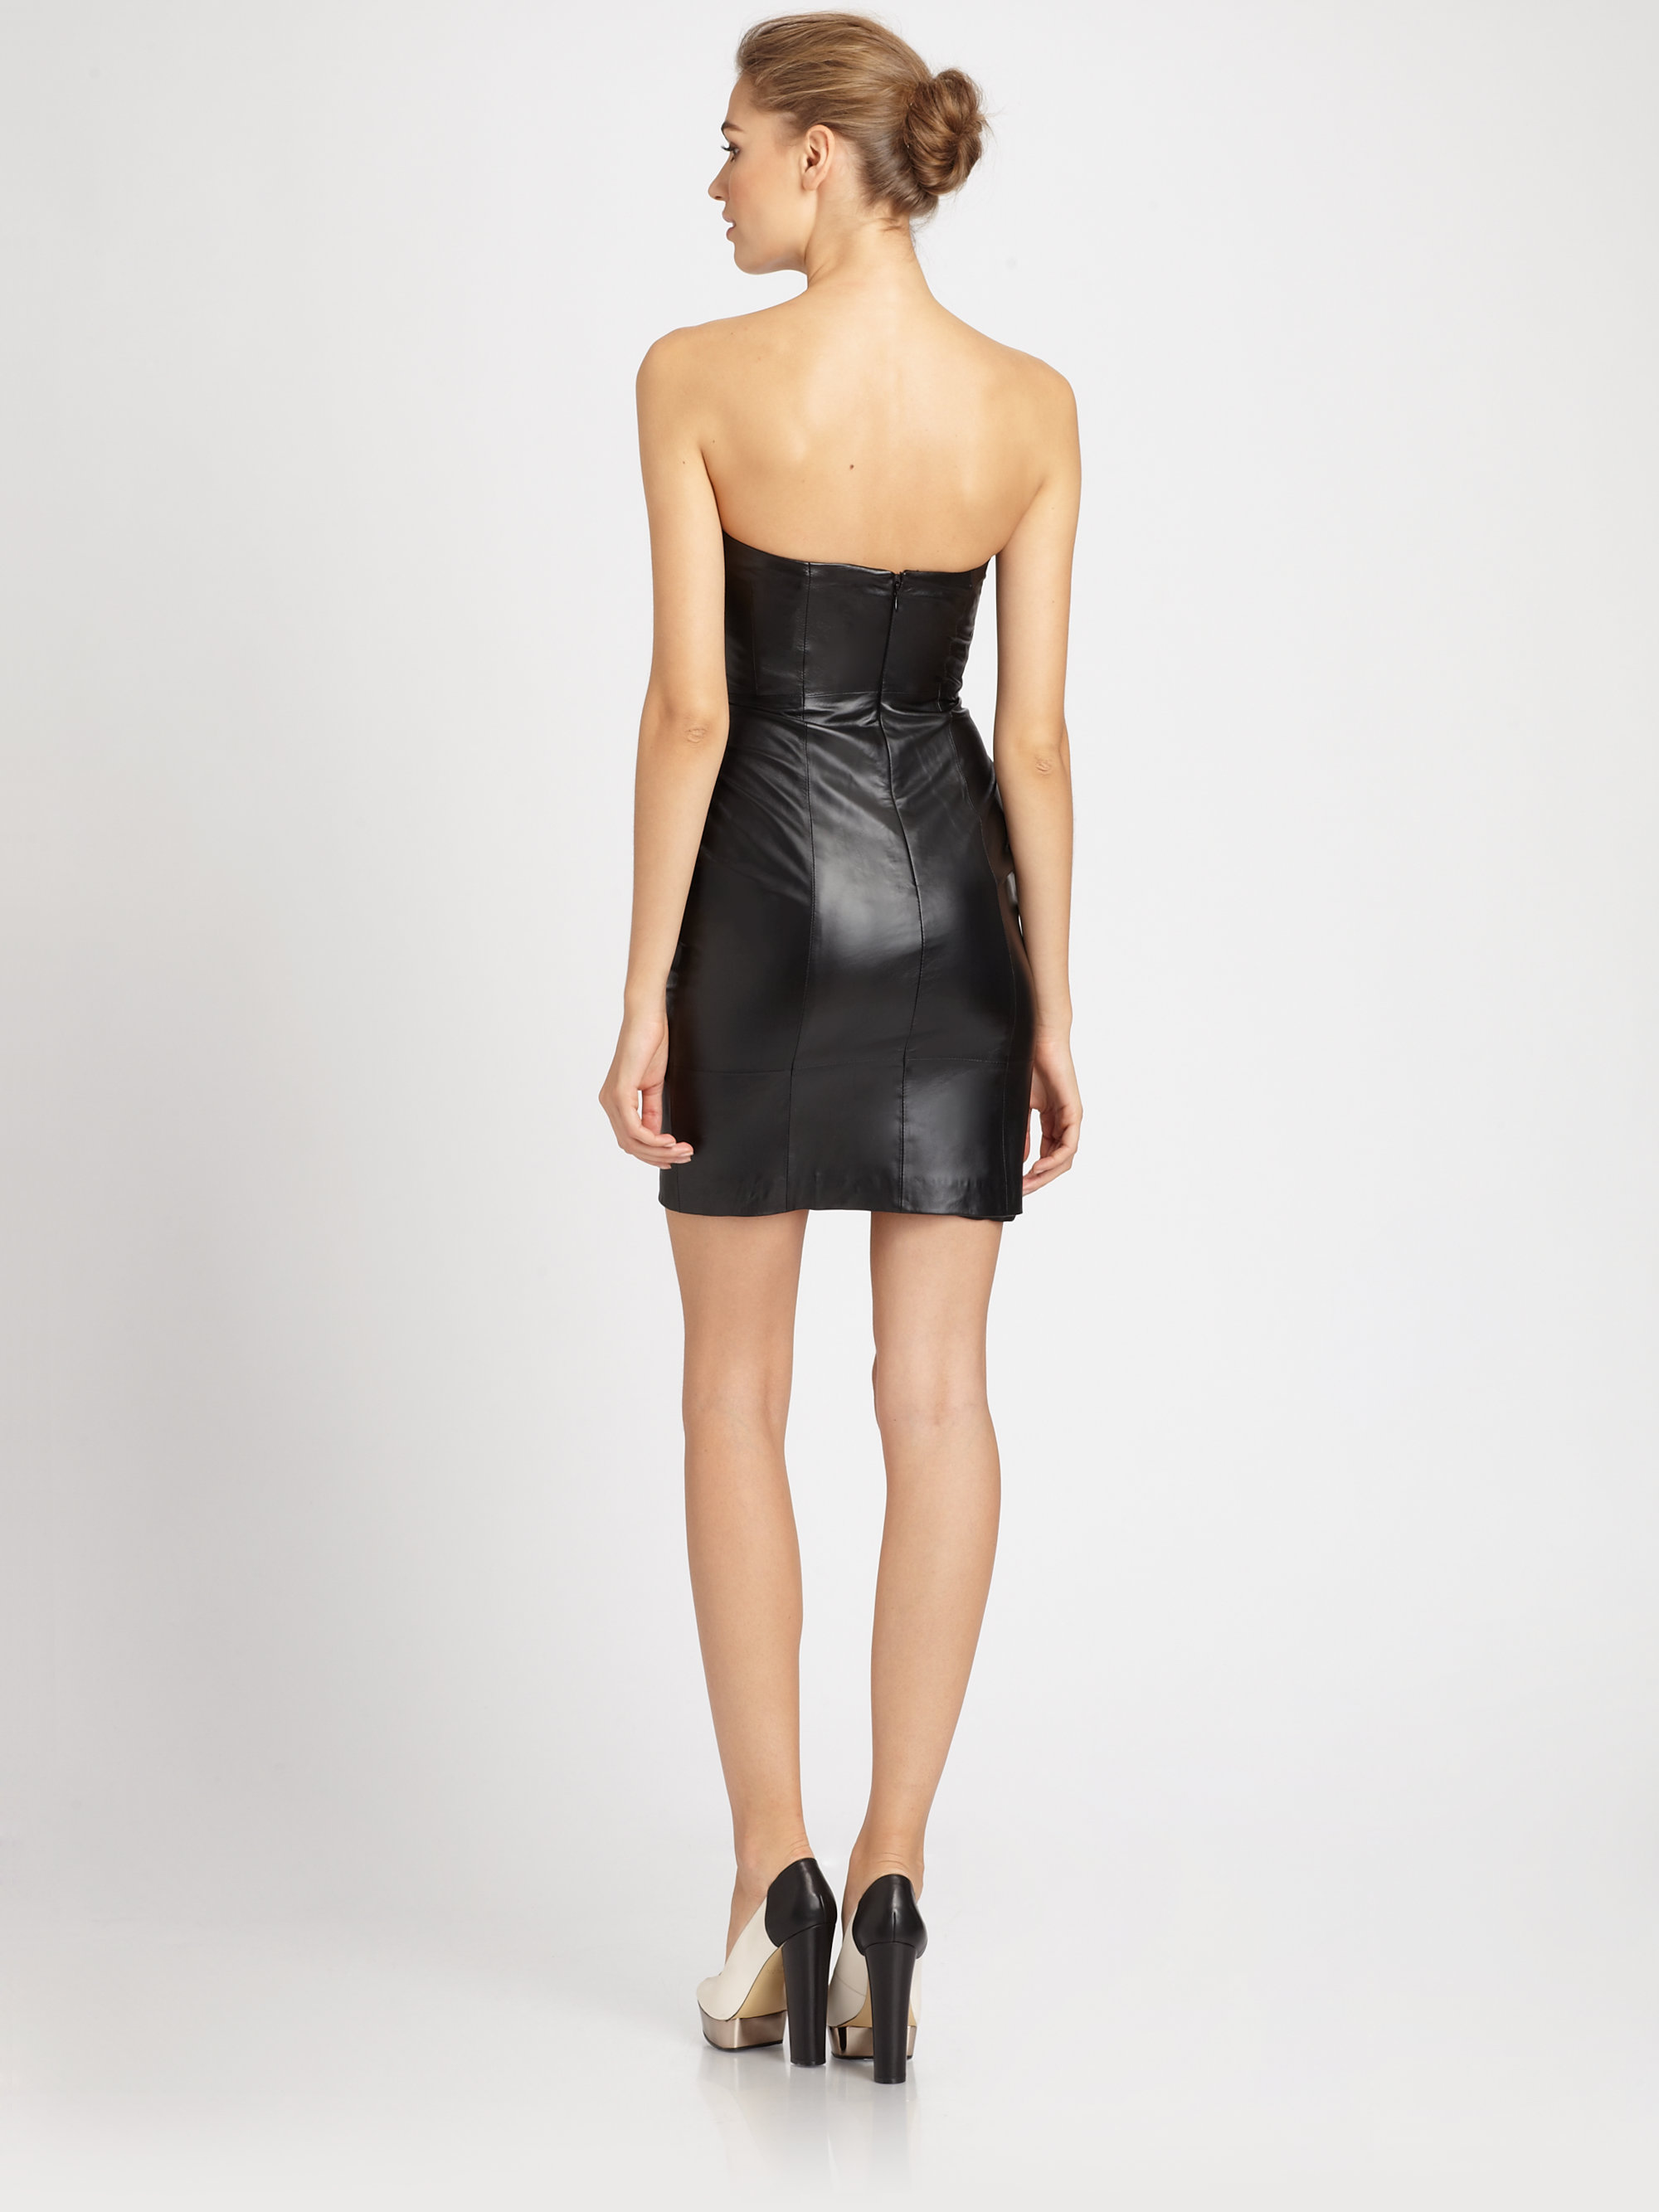 Badgley mischka Strapless Leather Dress in Black  Lyst